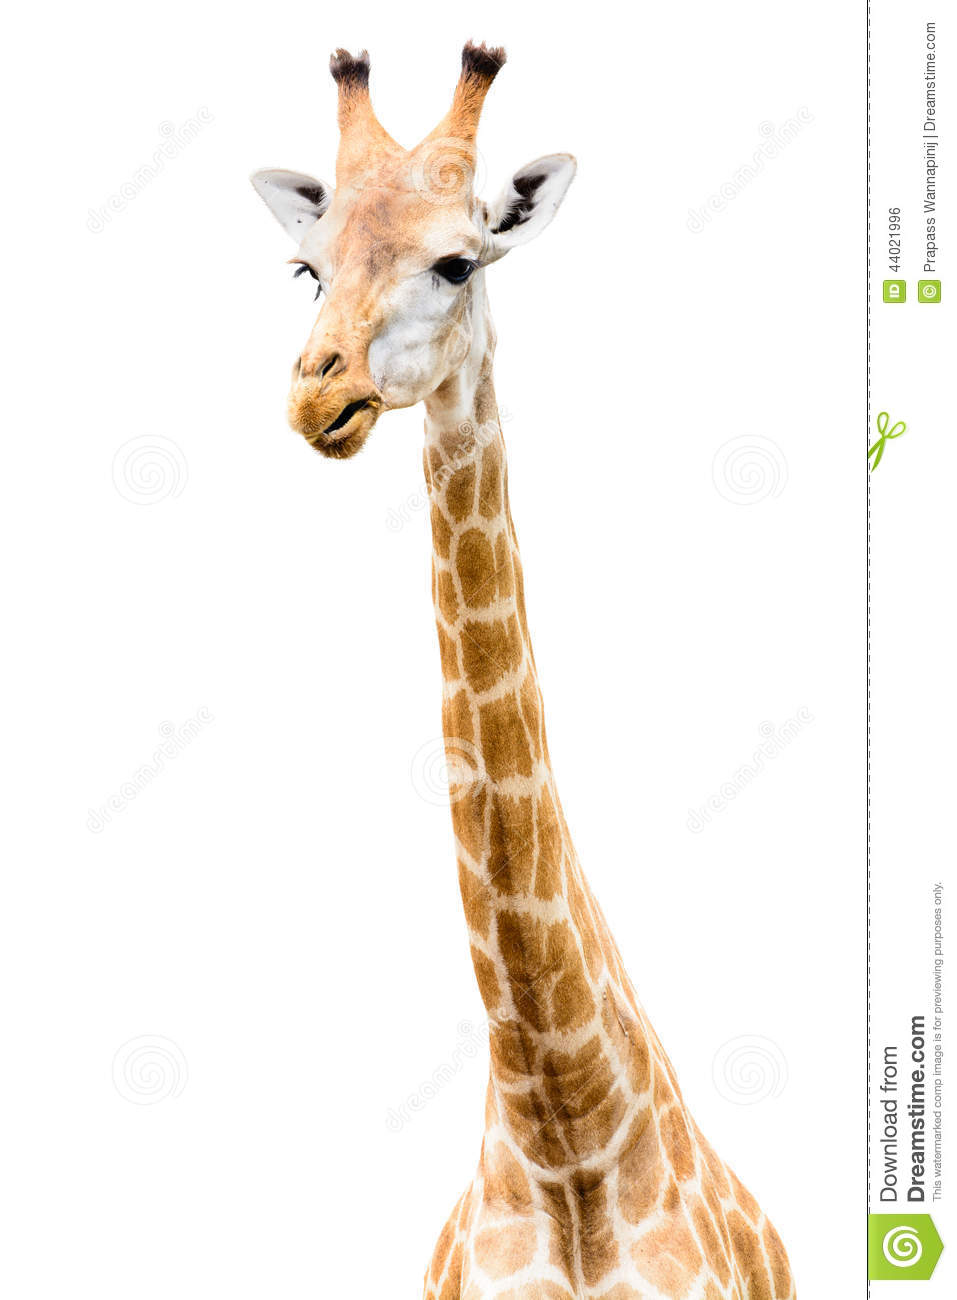 giraffe head white background - photo #4